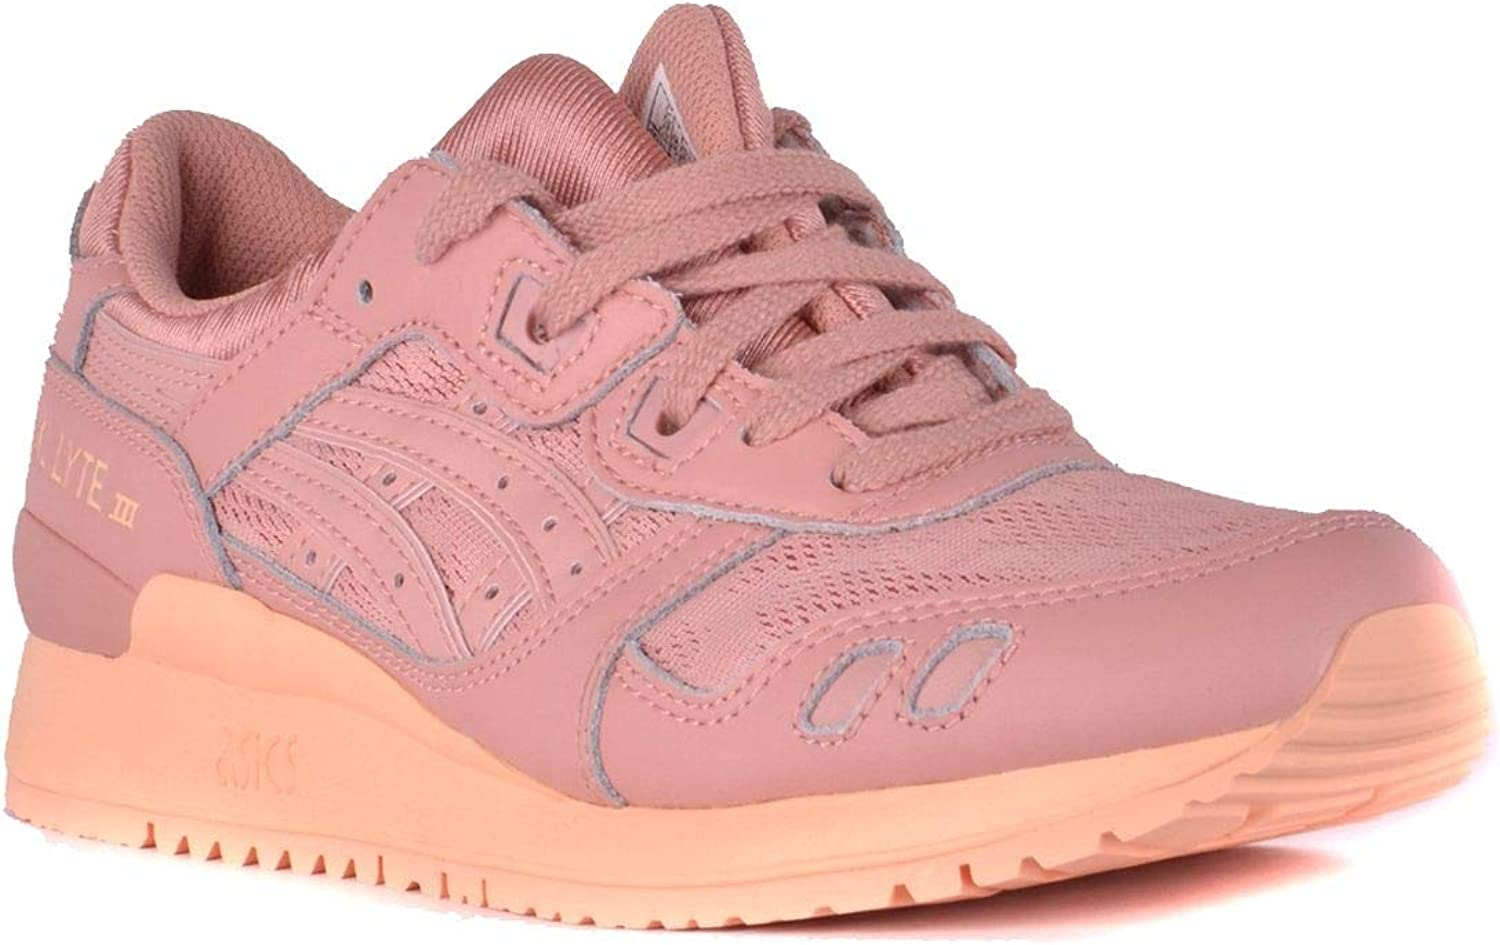 Luxury Fashion | Asics Mujer MCBI35276 Rosa Zapatillas | Temporada Outlet: Amazon.es: Zapatos y complementos